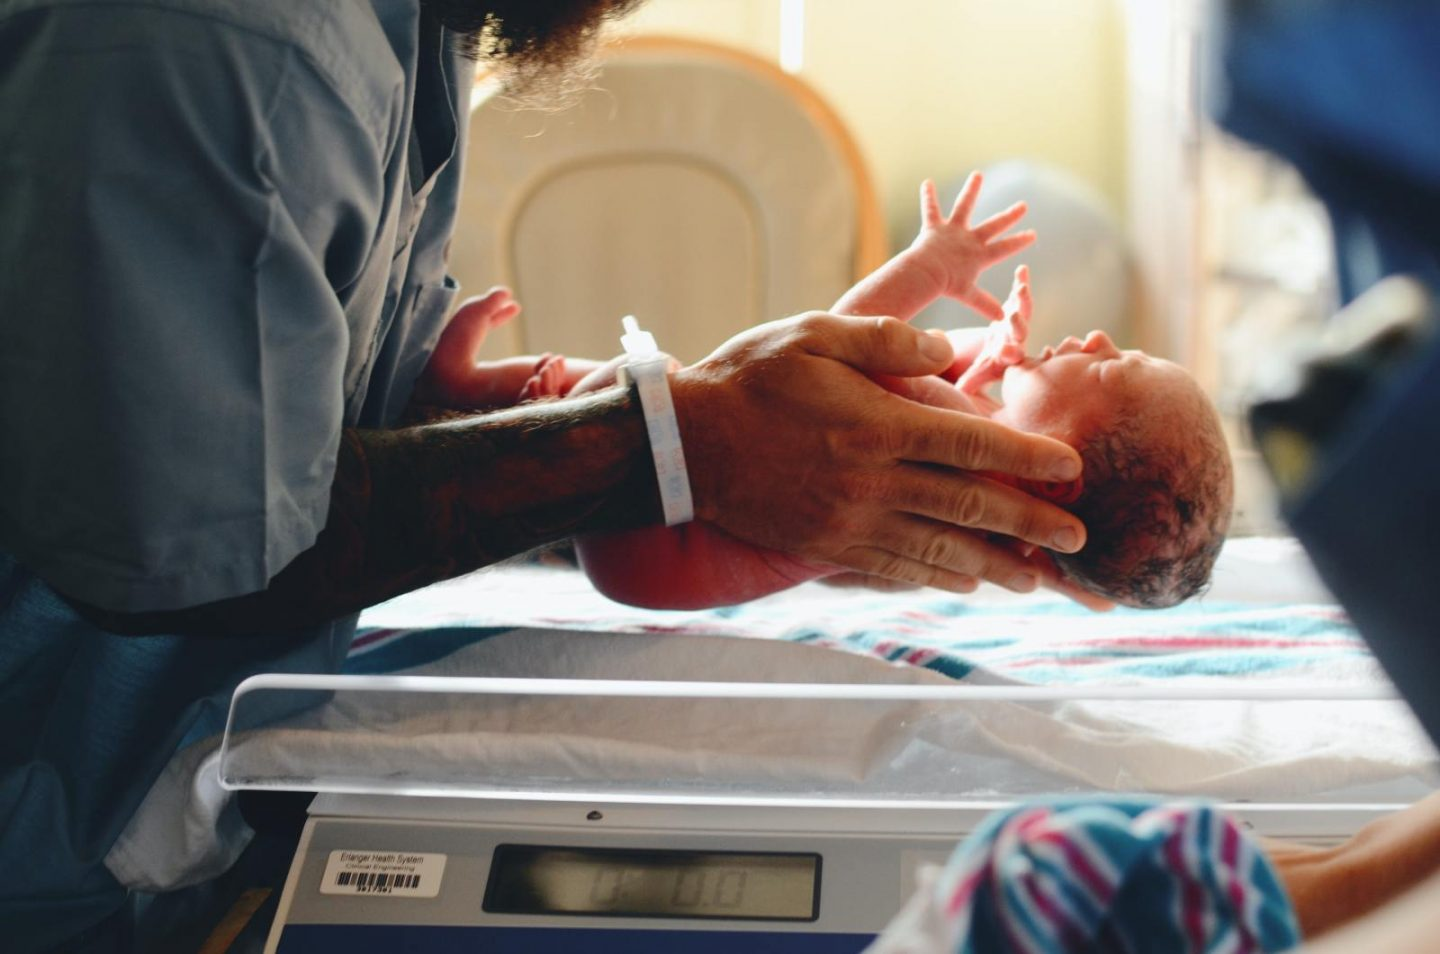 person holding newborn in hands to place the baby on a table